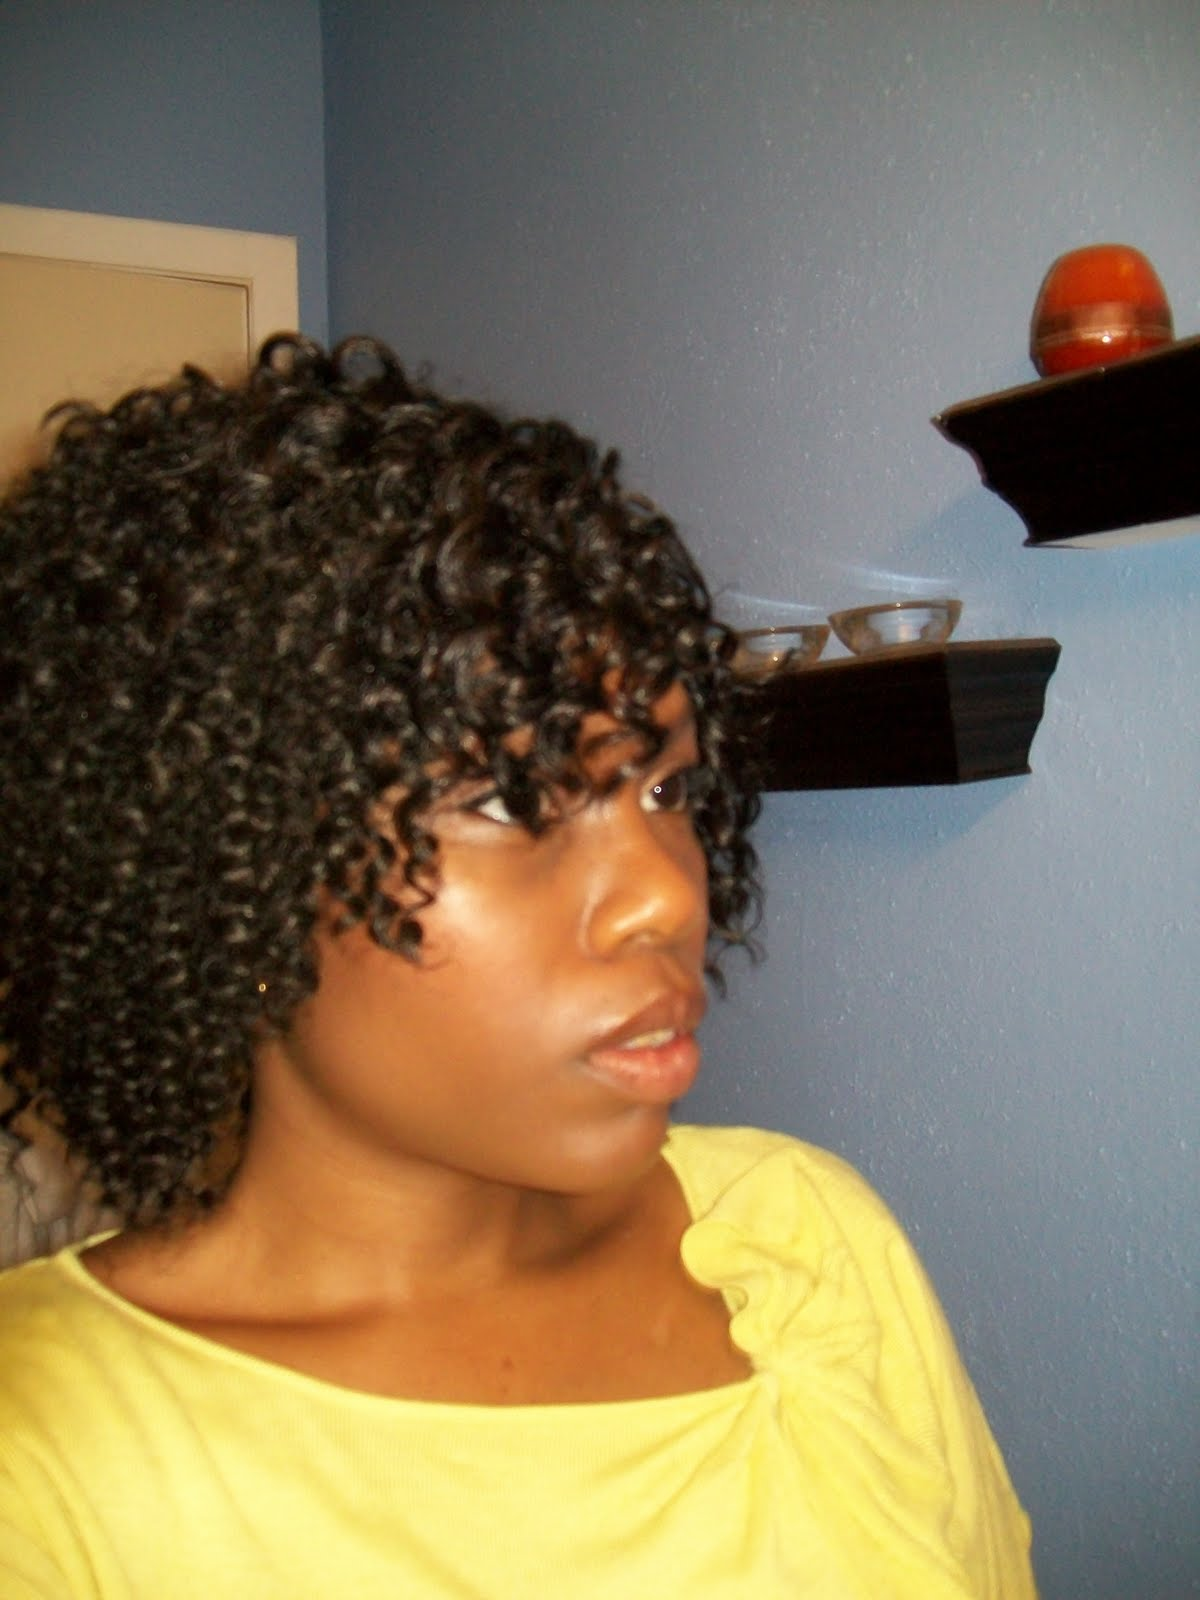 Crochet Braids Houston Salon newhairstylesformen2014.com